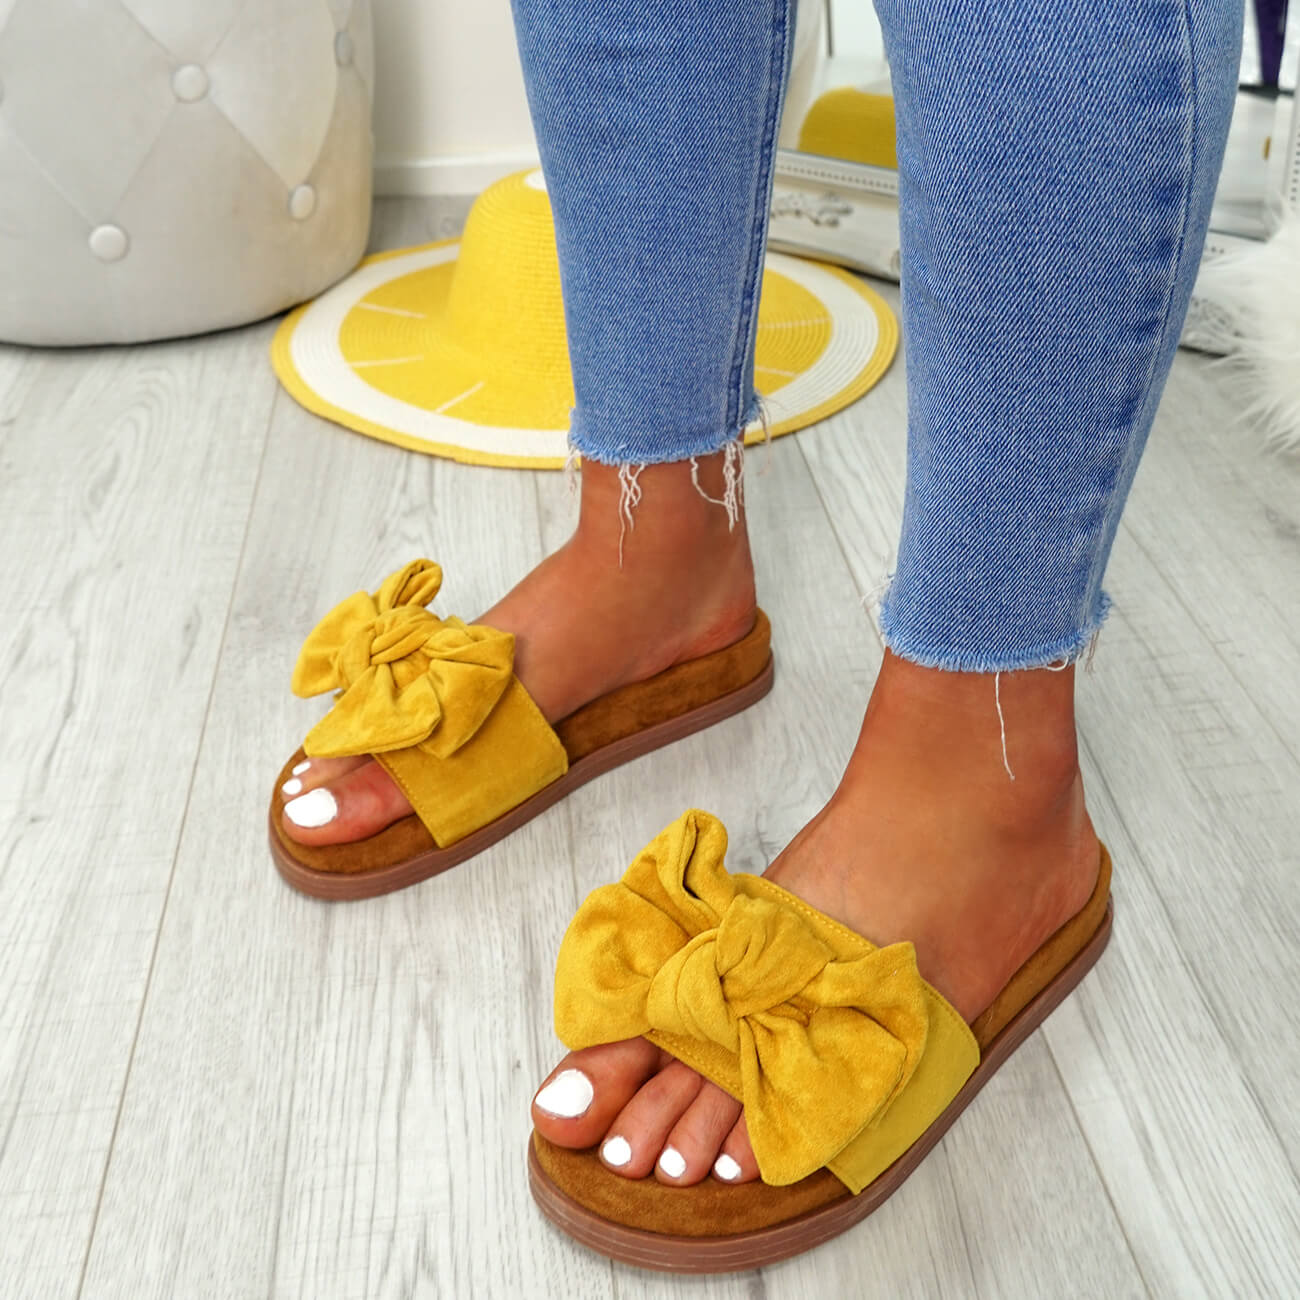 WOMENS-LADIES-FLAT-SANDALS-FRONT-BOW-COMFY-SUMMER-CASUAL-HOLIDAY-SHOES-SIZE-UK thumbnail 27